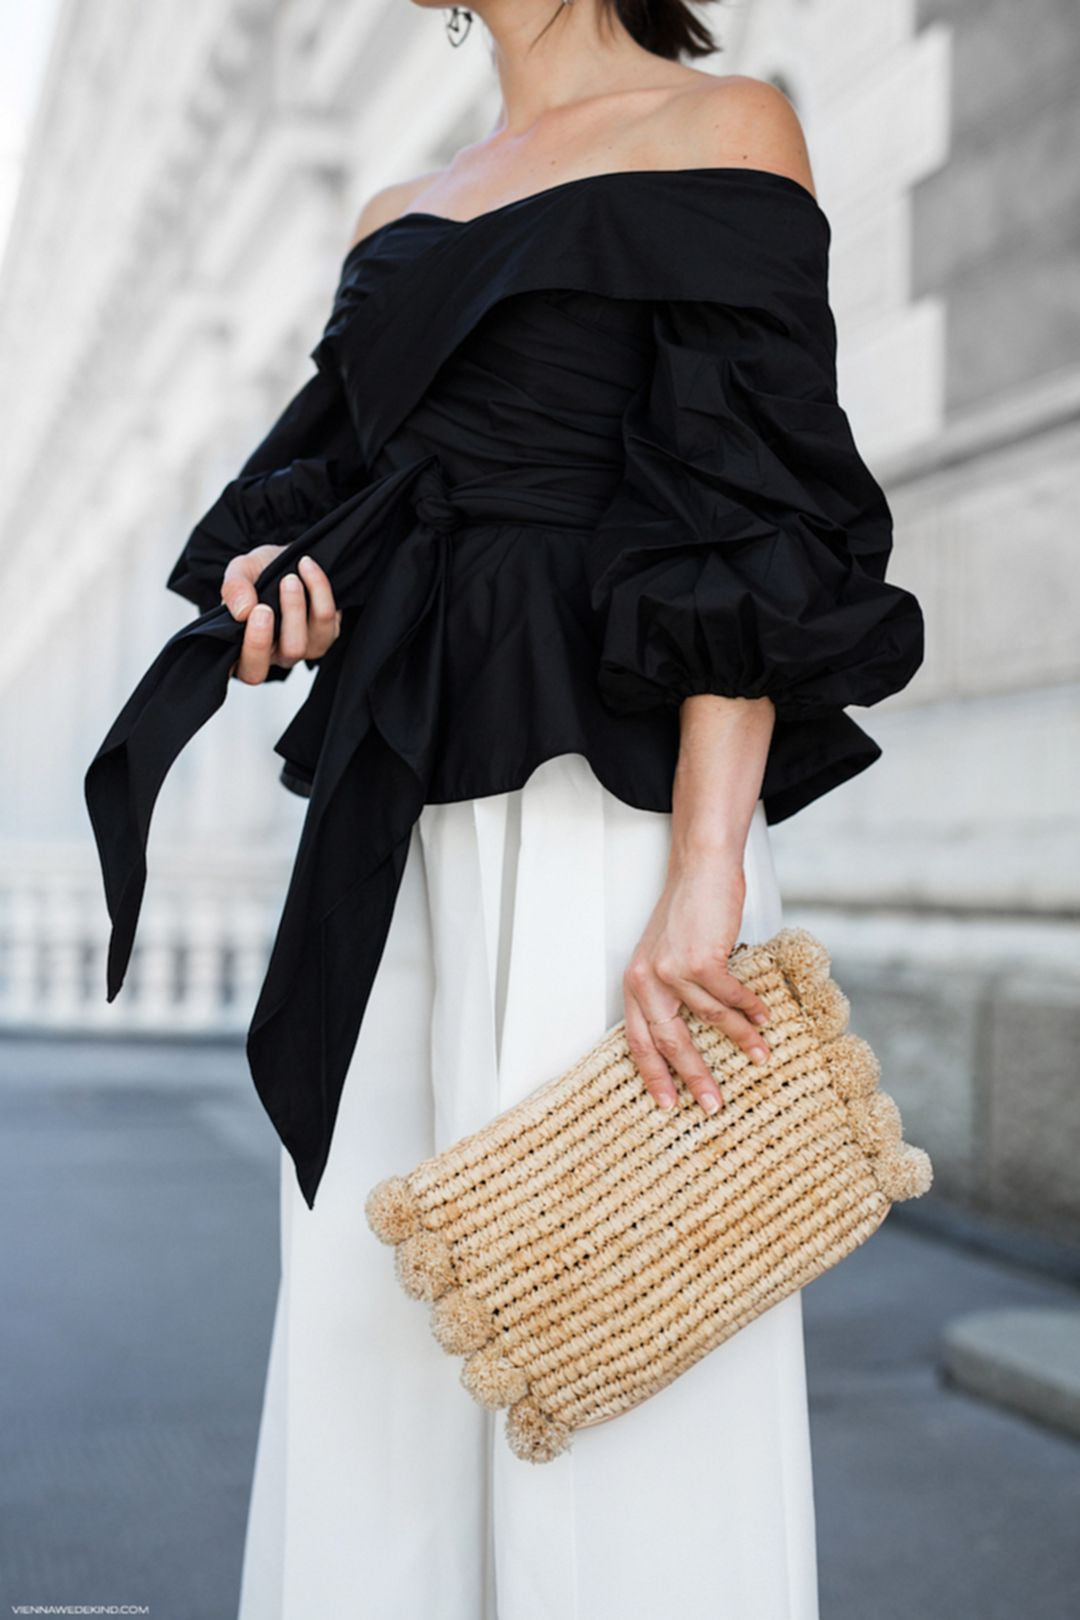 10 Awesome Guest Summer Wedding Outfit Ideas Summer